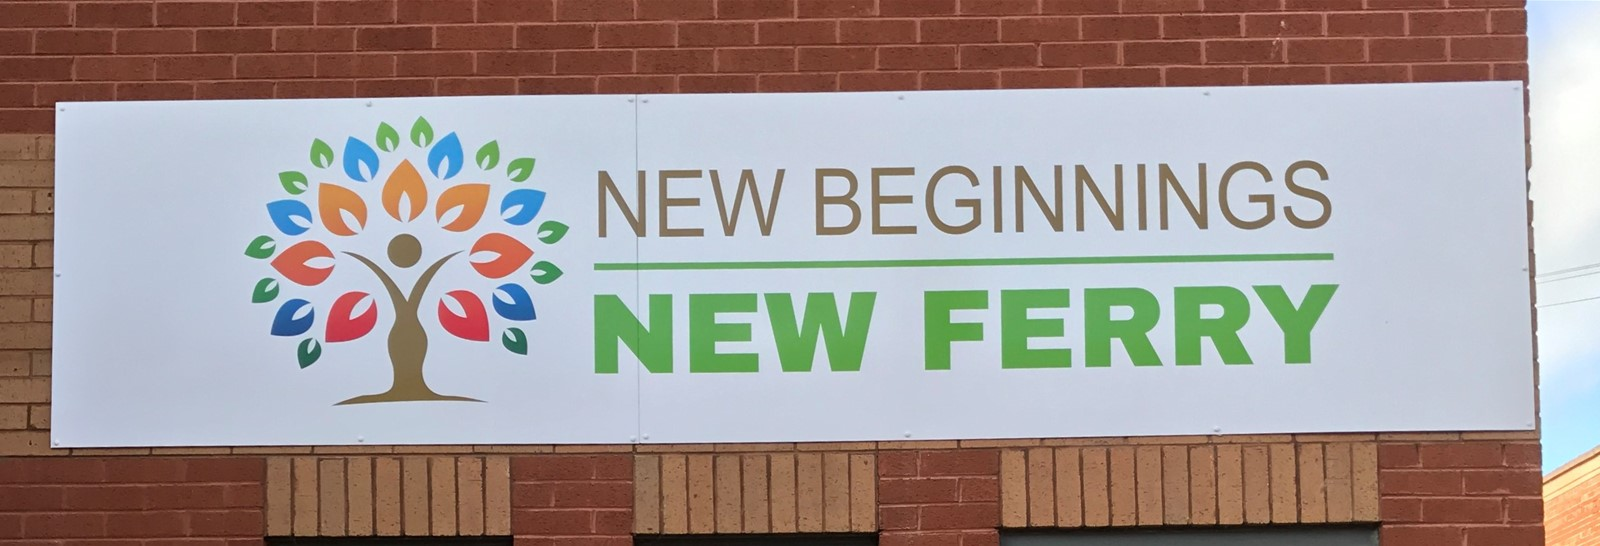 Outdoor signage panel at New Ferry